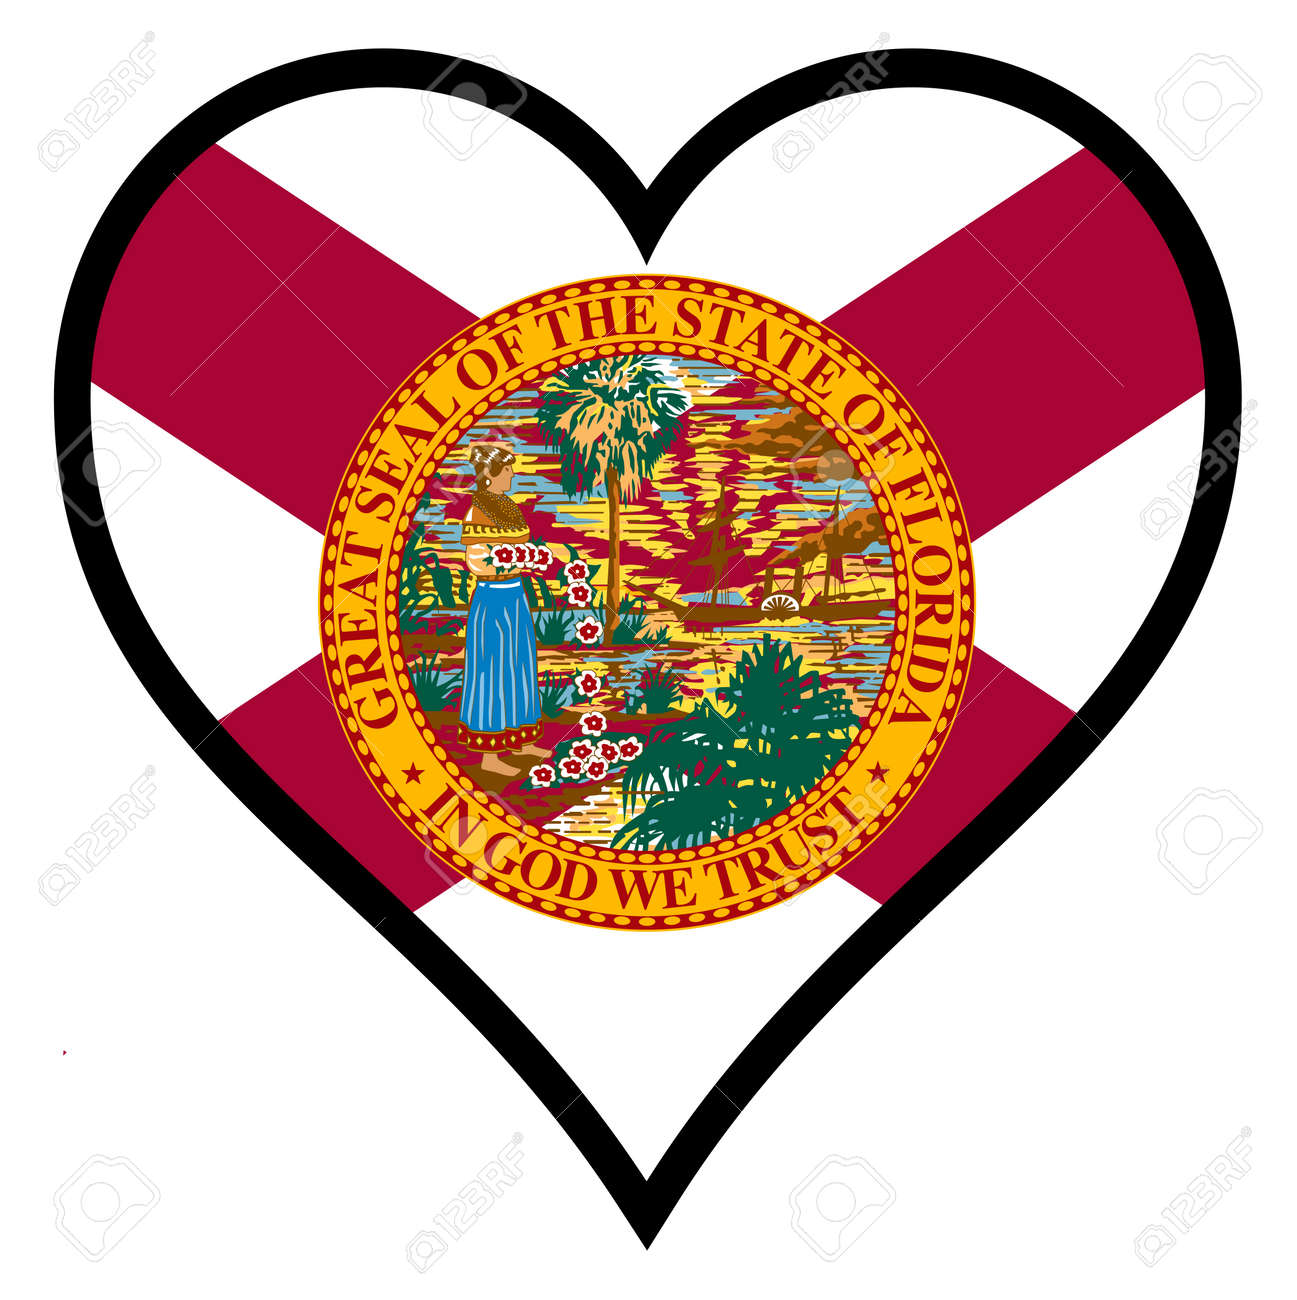 Florida state flag within a heart all over a white background florida state flag within a heart all over a white background stock vector 34518283 biocorpaavc Images